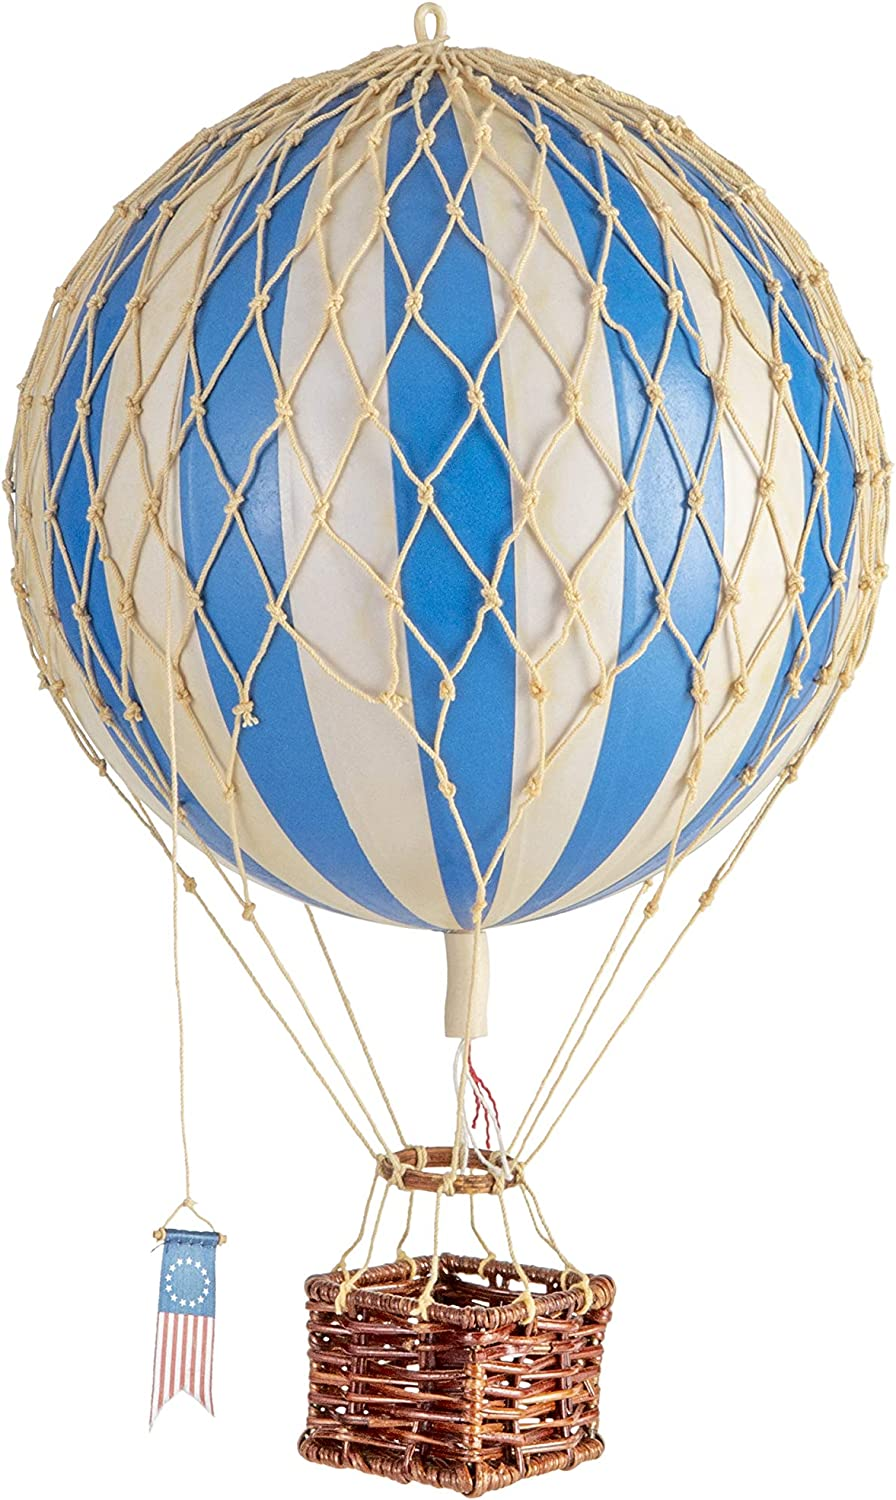 Authentic Models, Travels Light Air Balloon, Hanging Home Decor - Blue Double